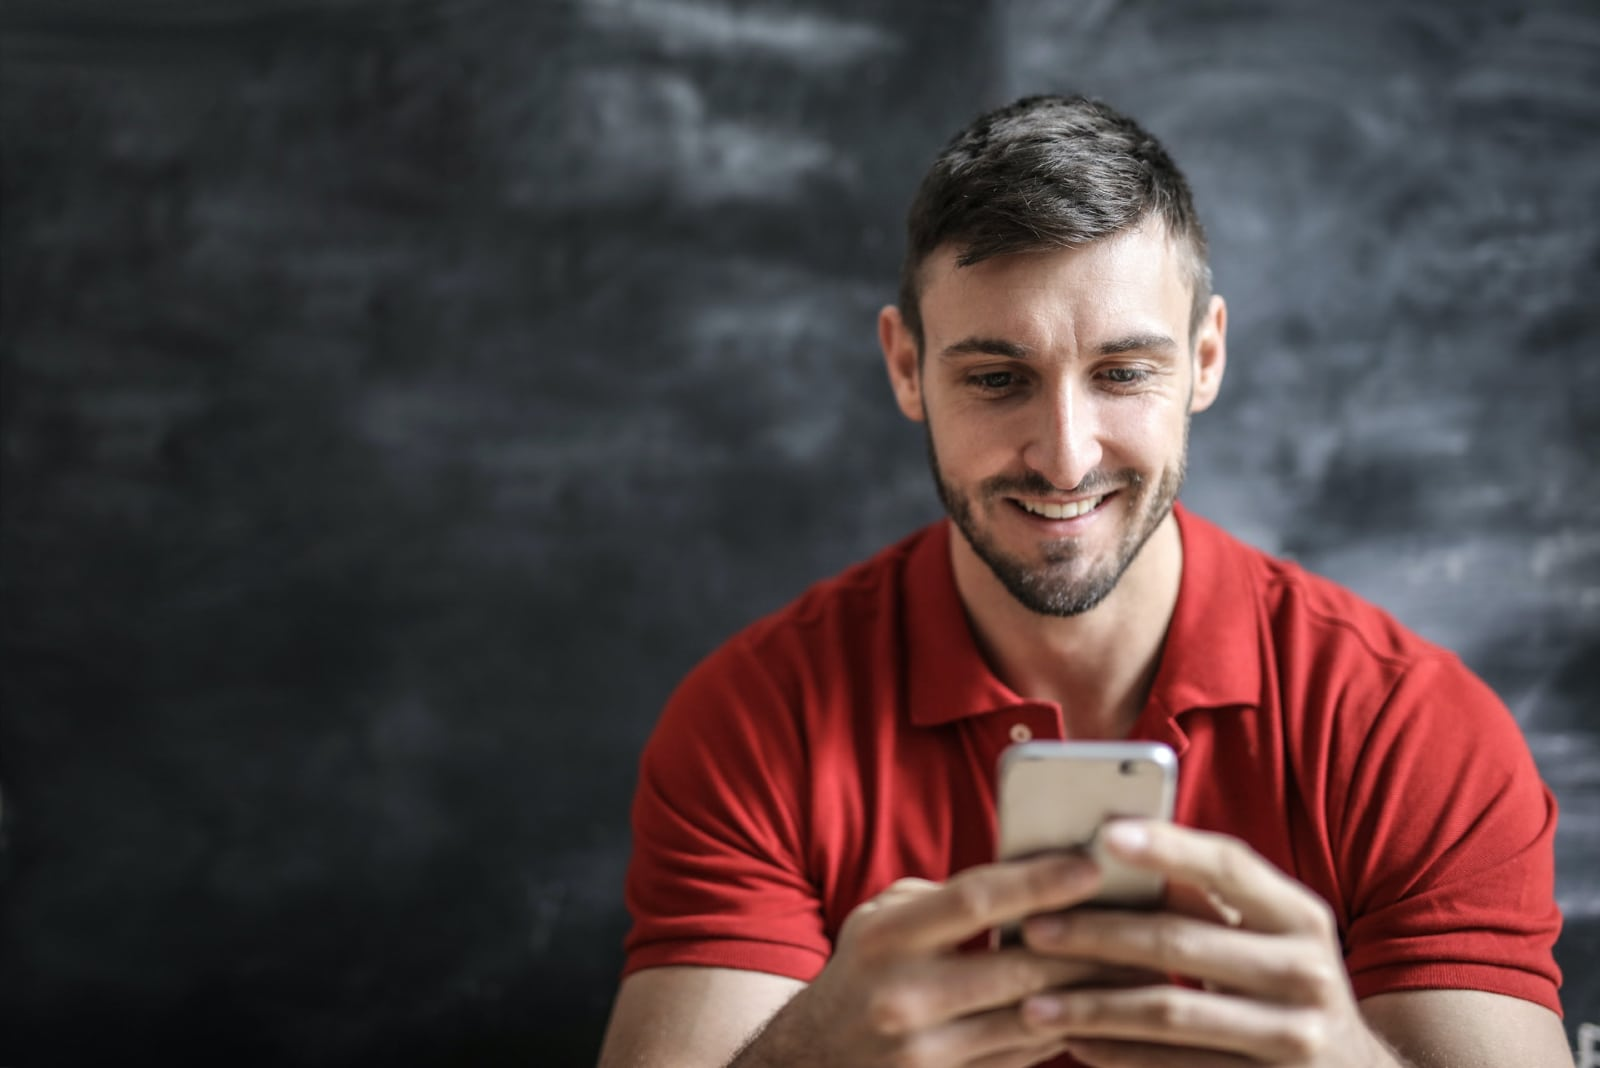 happy man in red polo shirt using smartphone